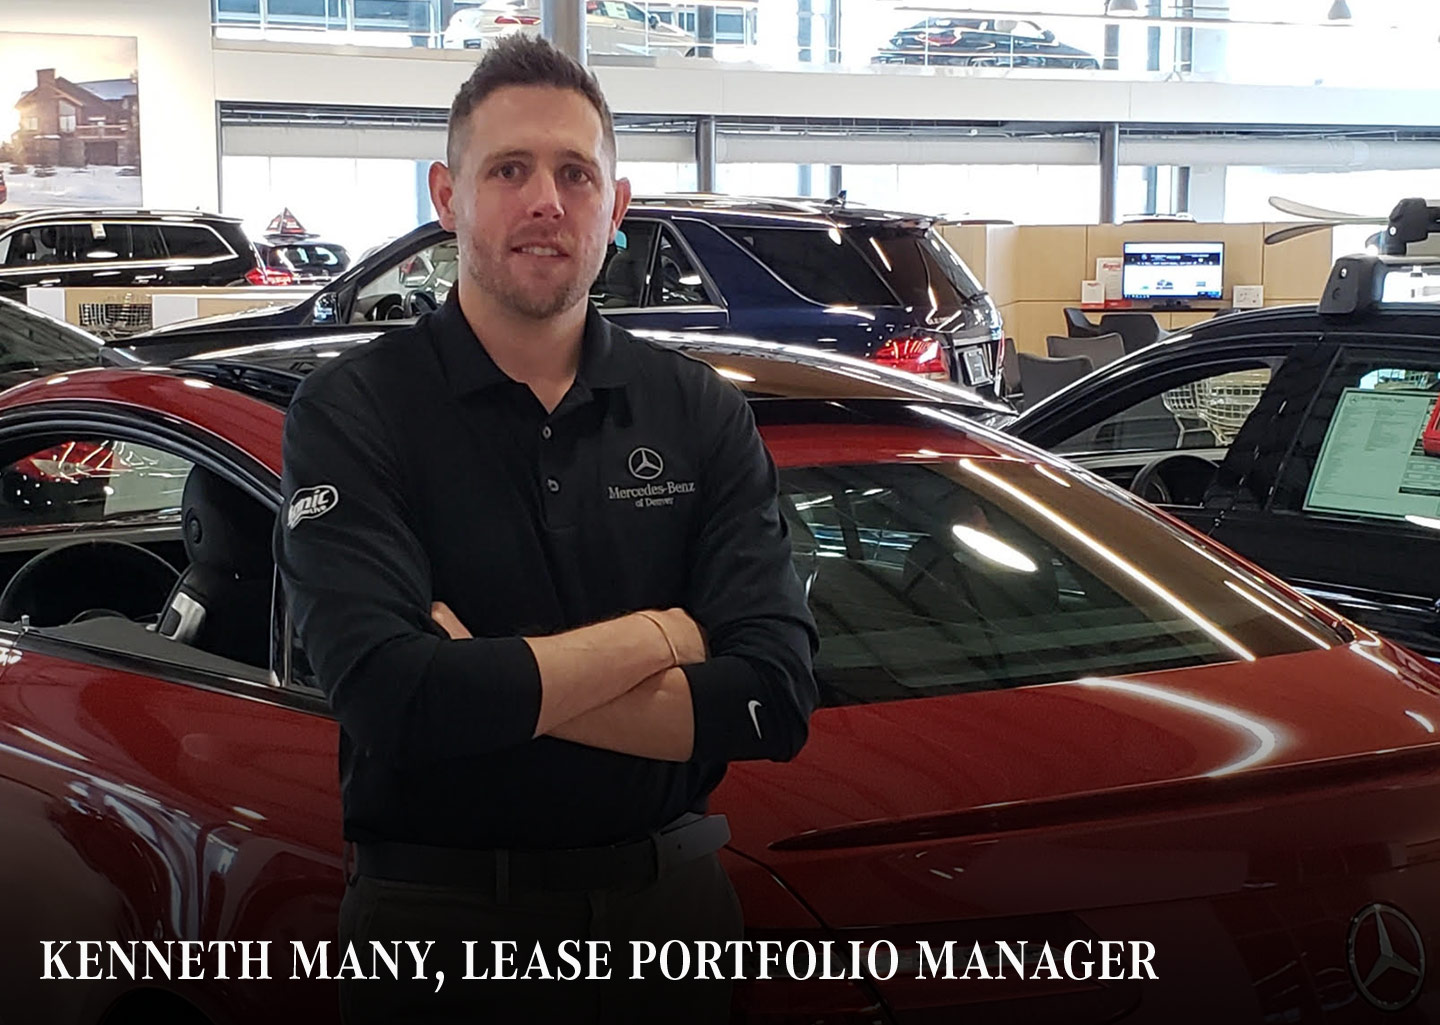 Kenneth Many, Lease Portfolio Manager